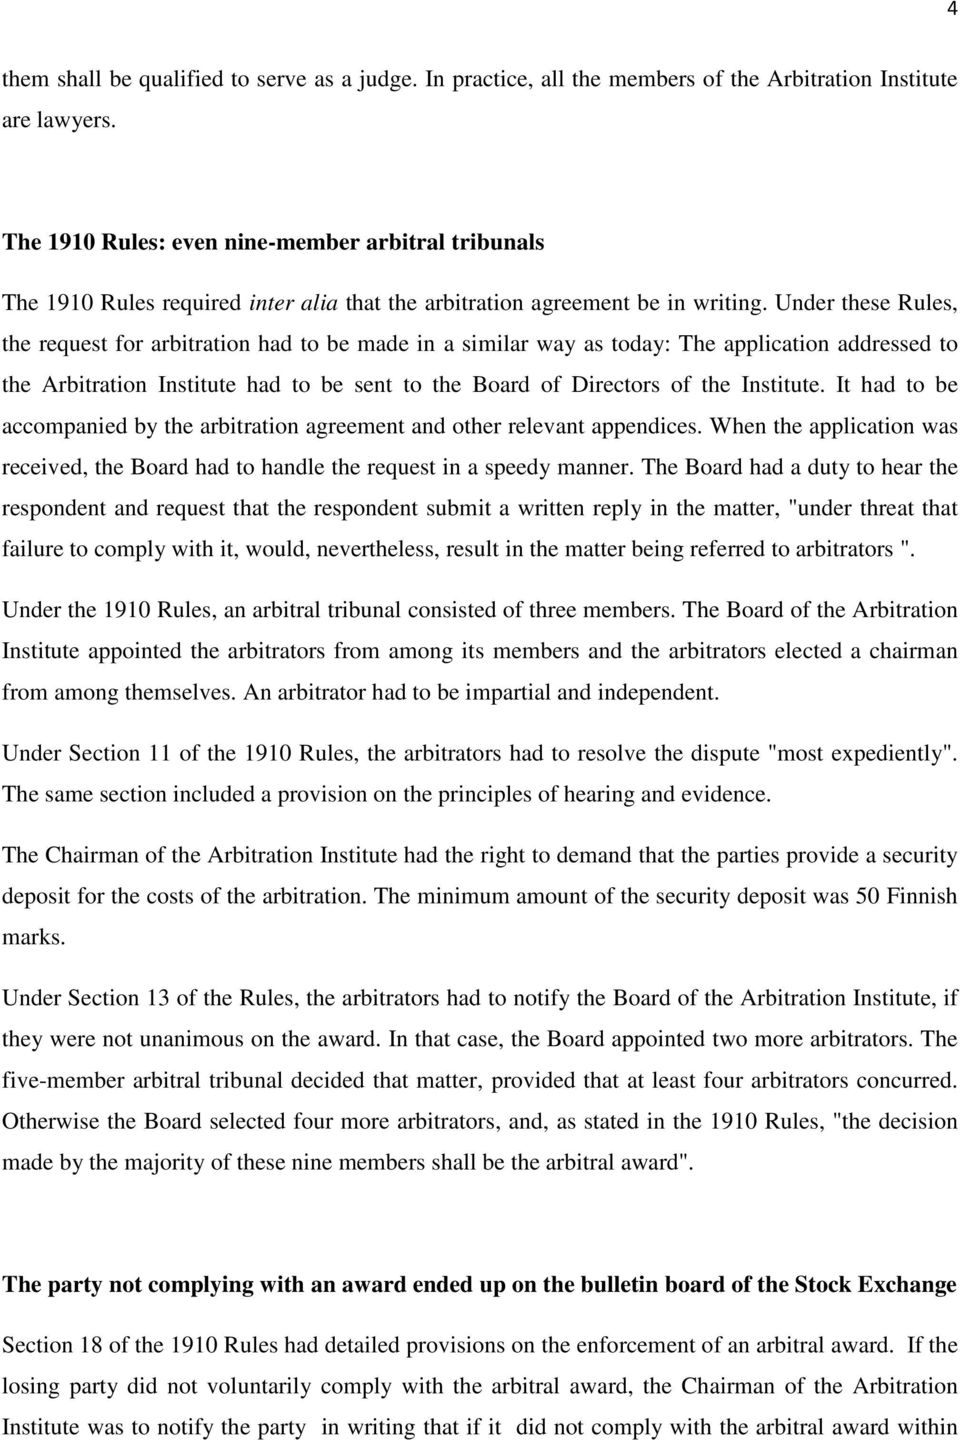 Under these Rules, the request for arbitration had to be made in a similar way as today: The application addressed to the Arbitration Institute had to be sent to the Board of Directors of the